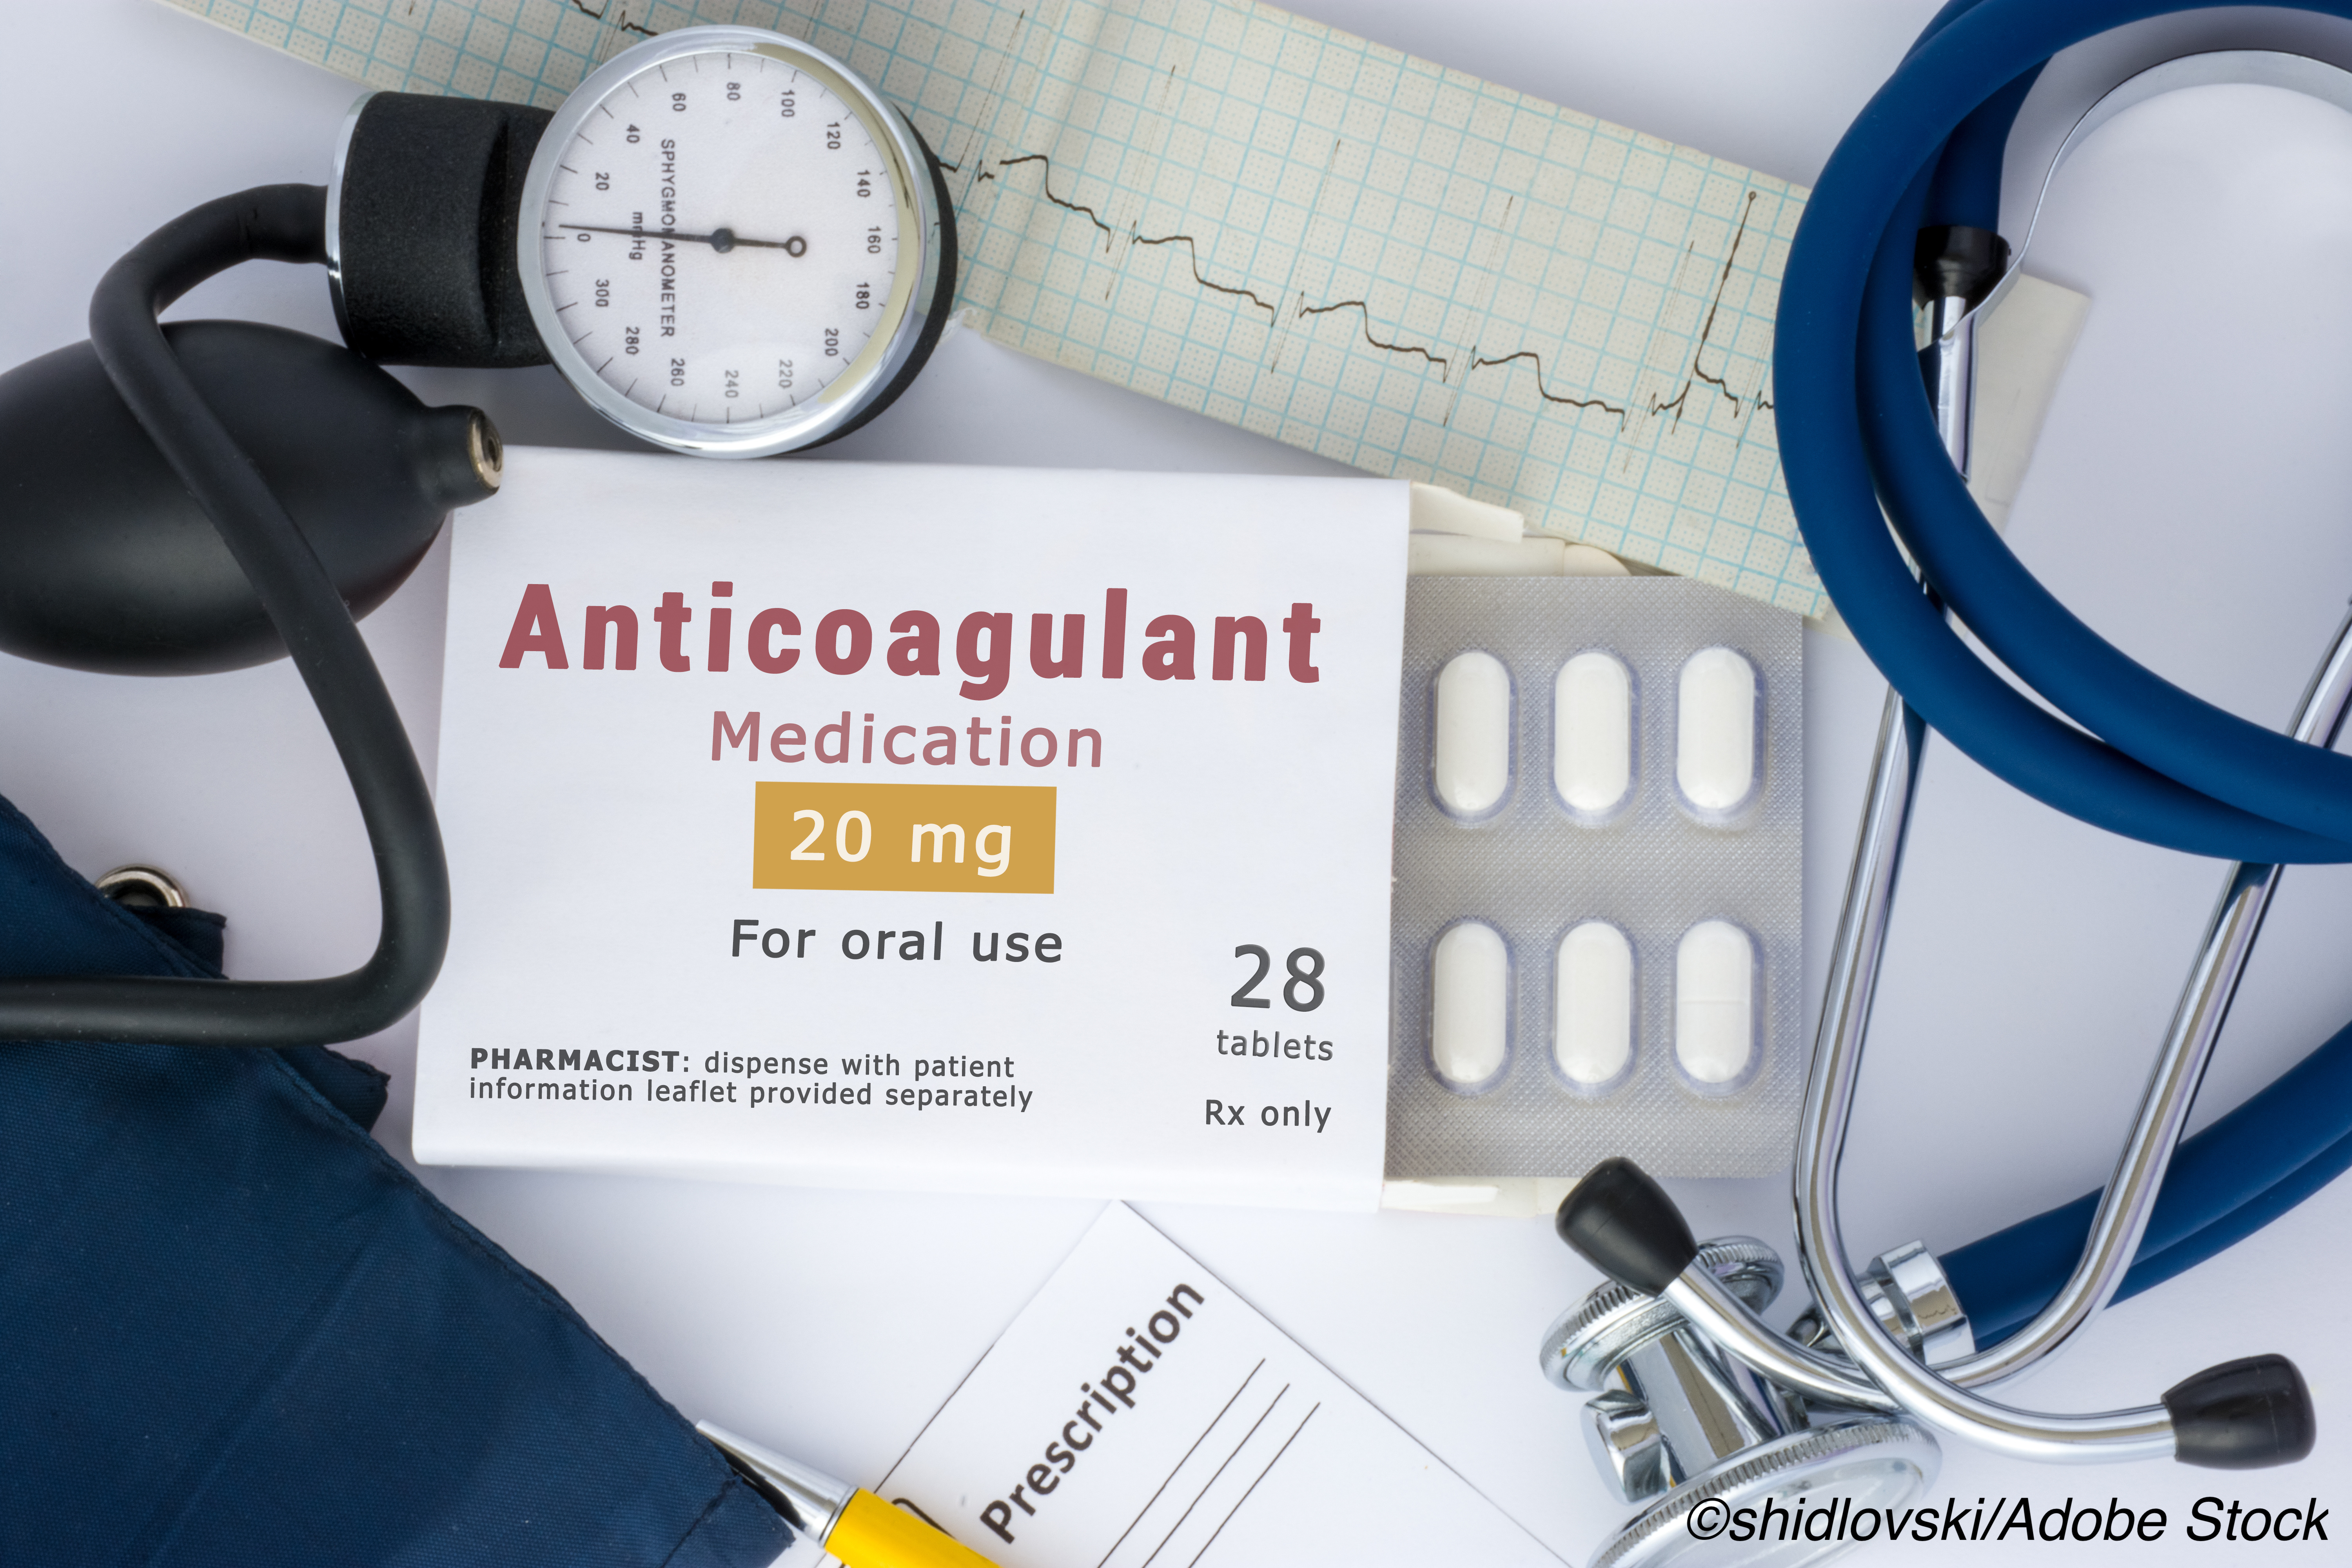 It's As Simple As ABC For Predicting Bleed Risk in Anticoagulated Afib Patients